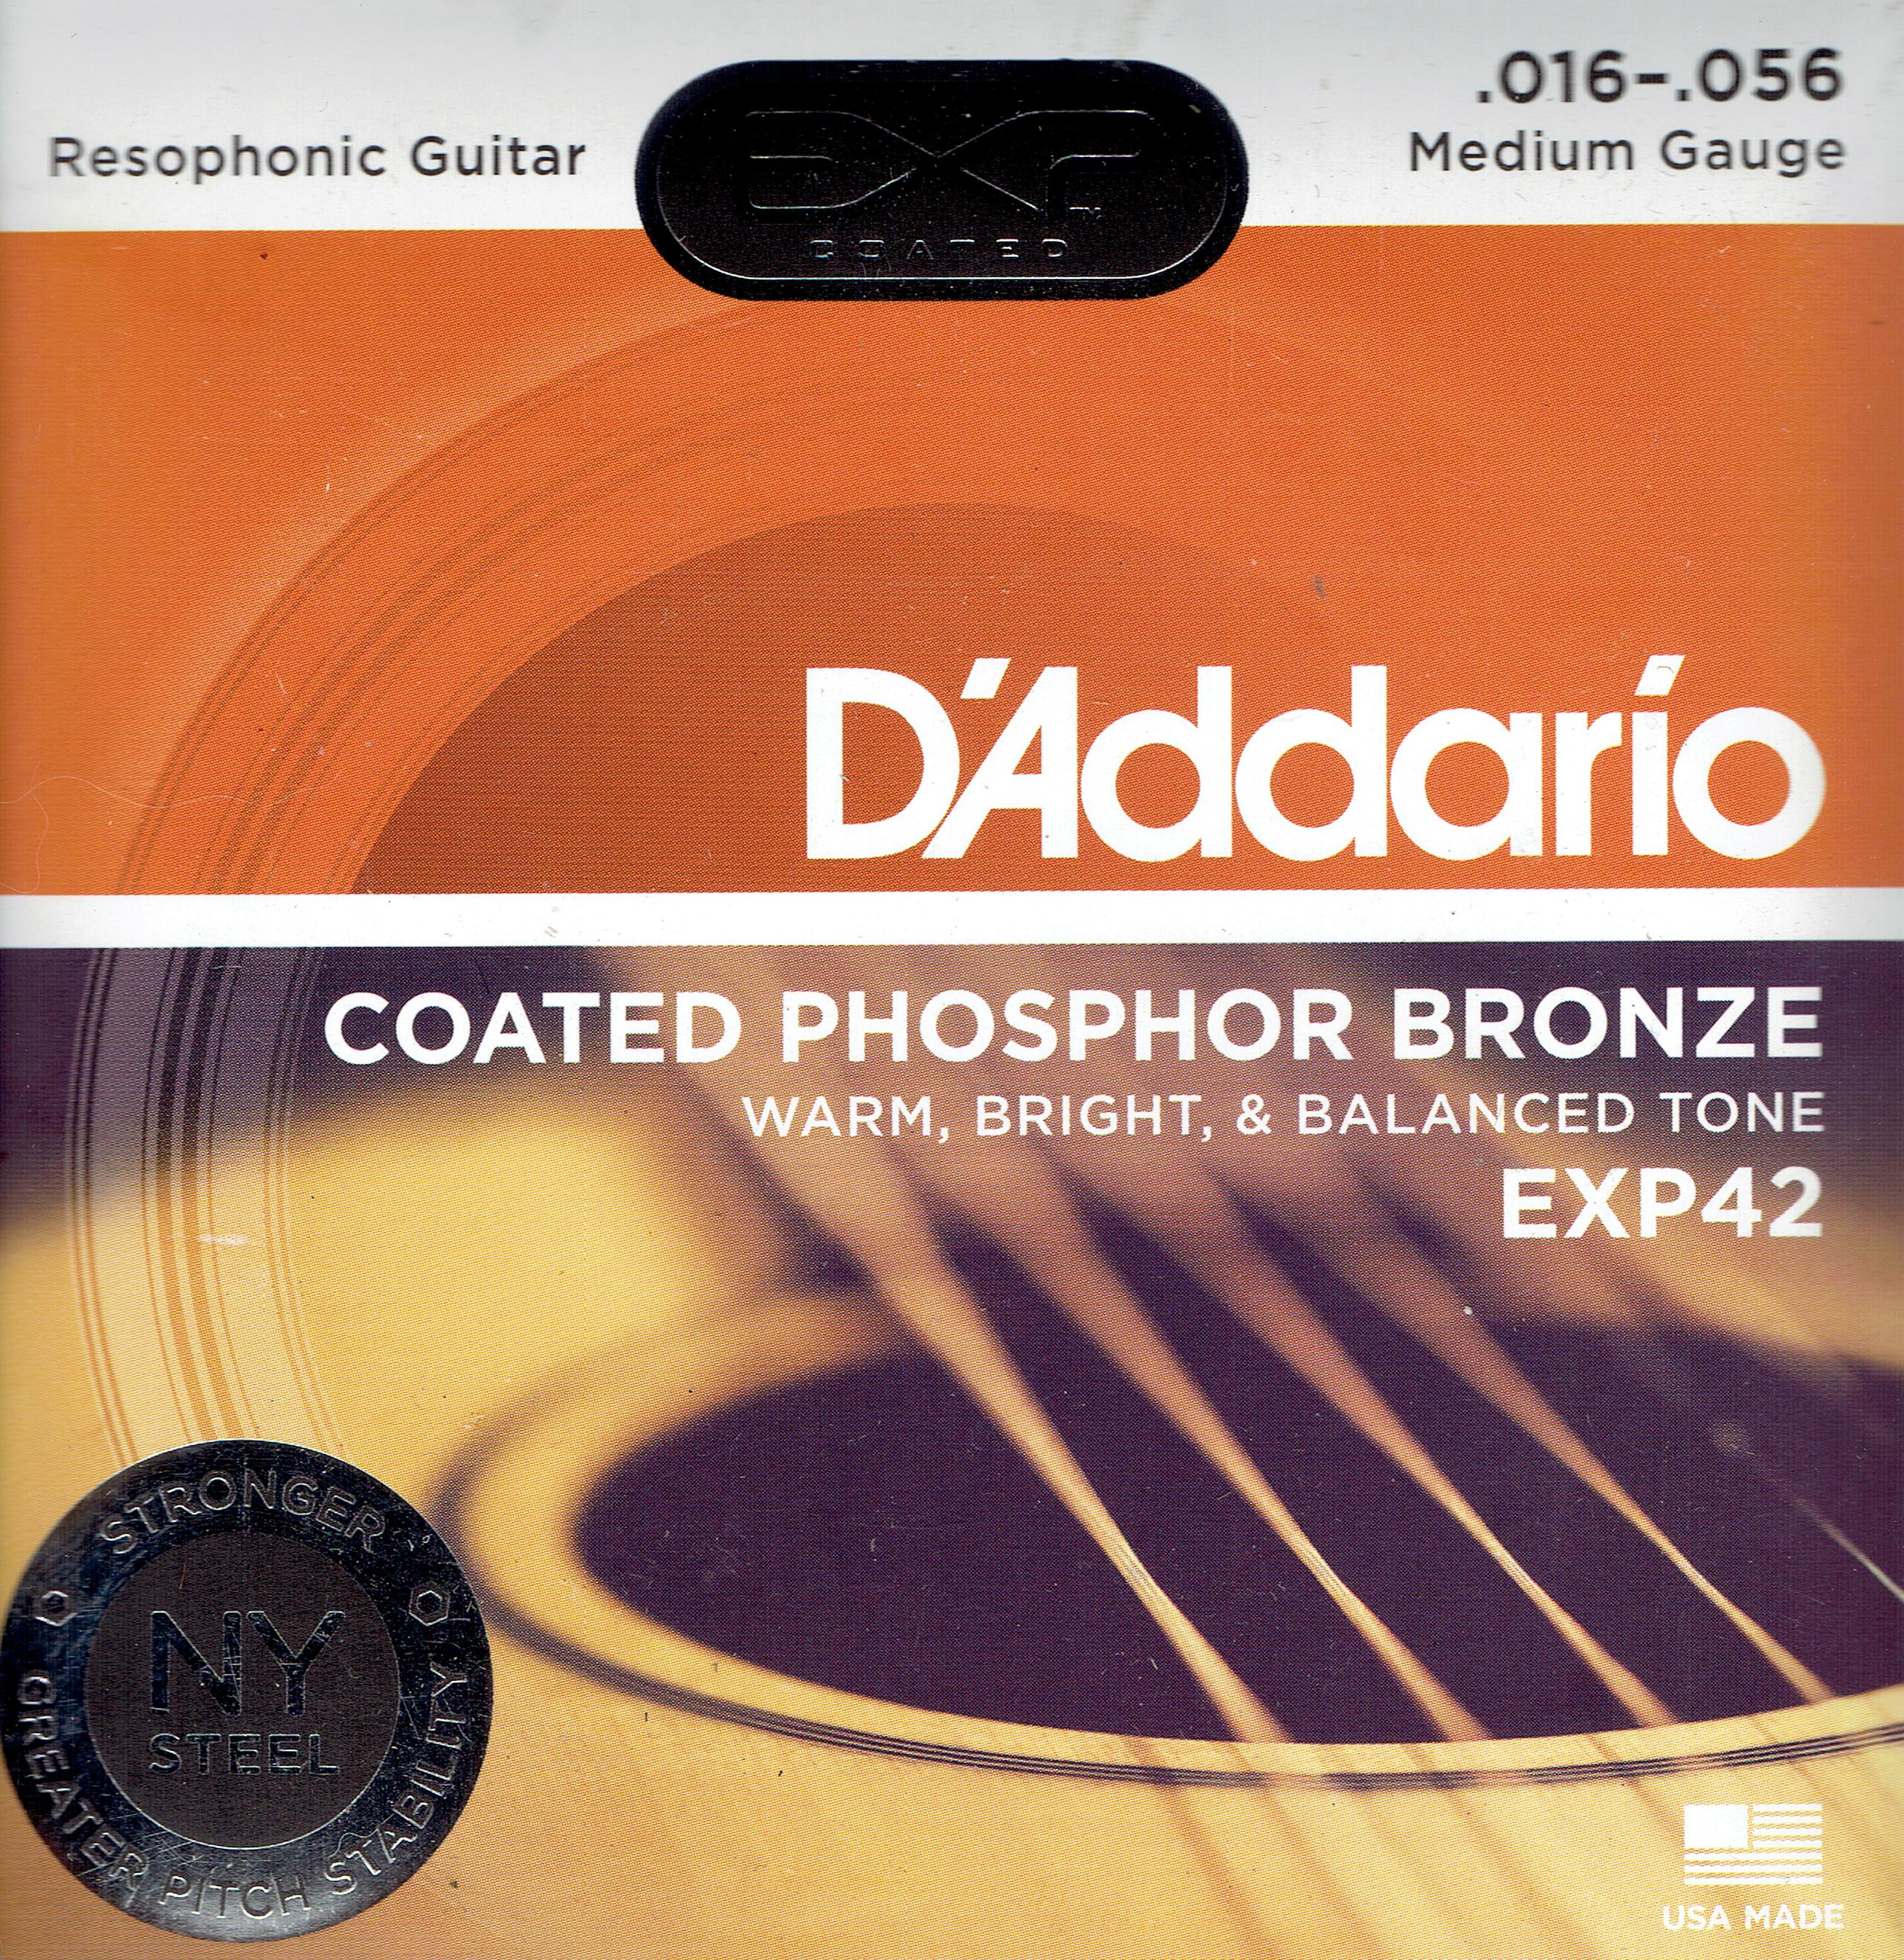 D'Addario Resophonic strings